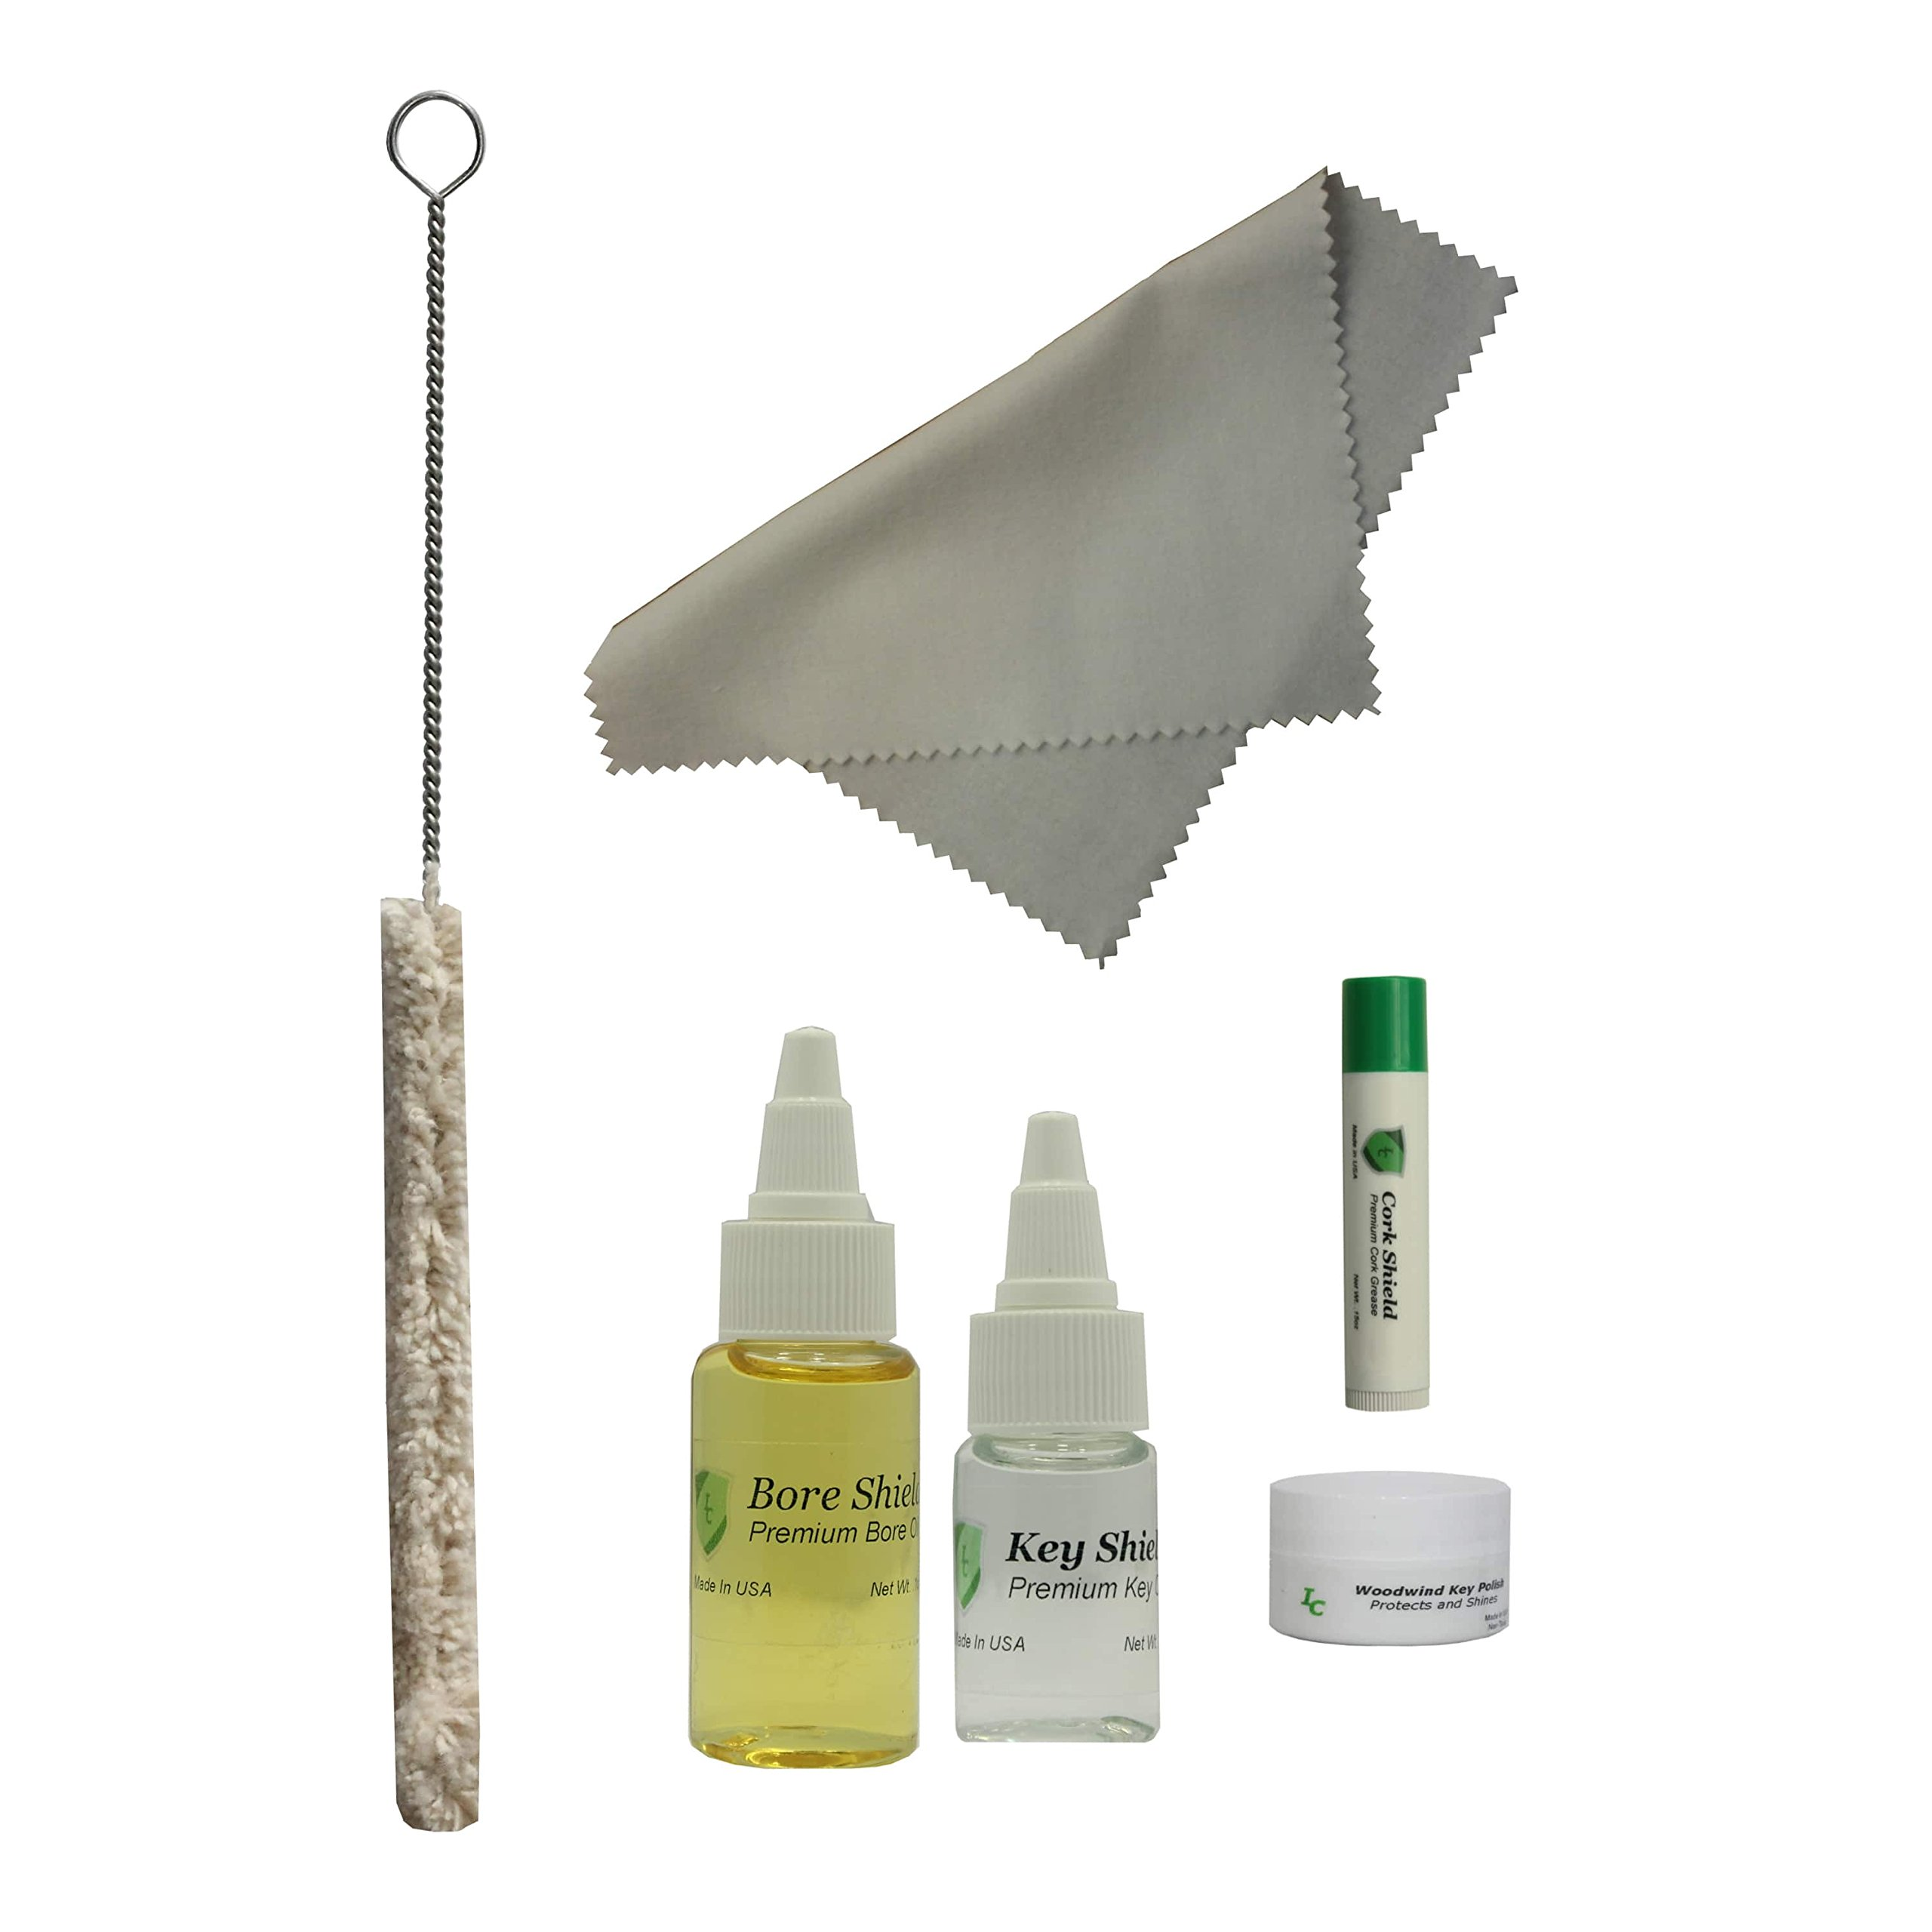 Clarinet Care Kit, Bore Oil, Key Oil, Polishing Cloth, Cork Grease, Cotton Swab, Fits Bb Clarinets